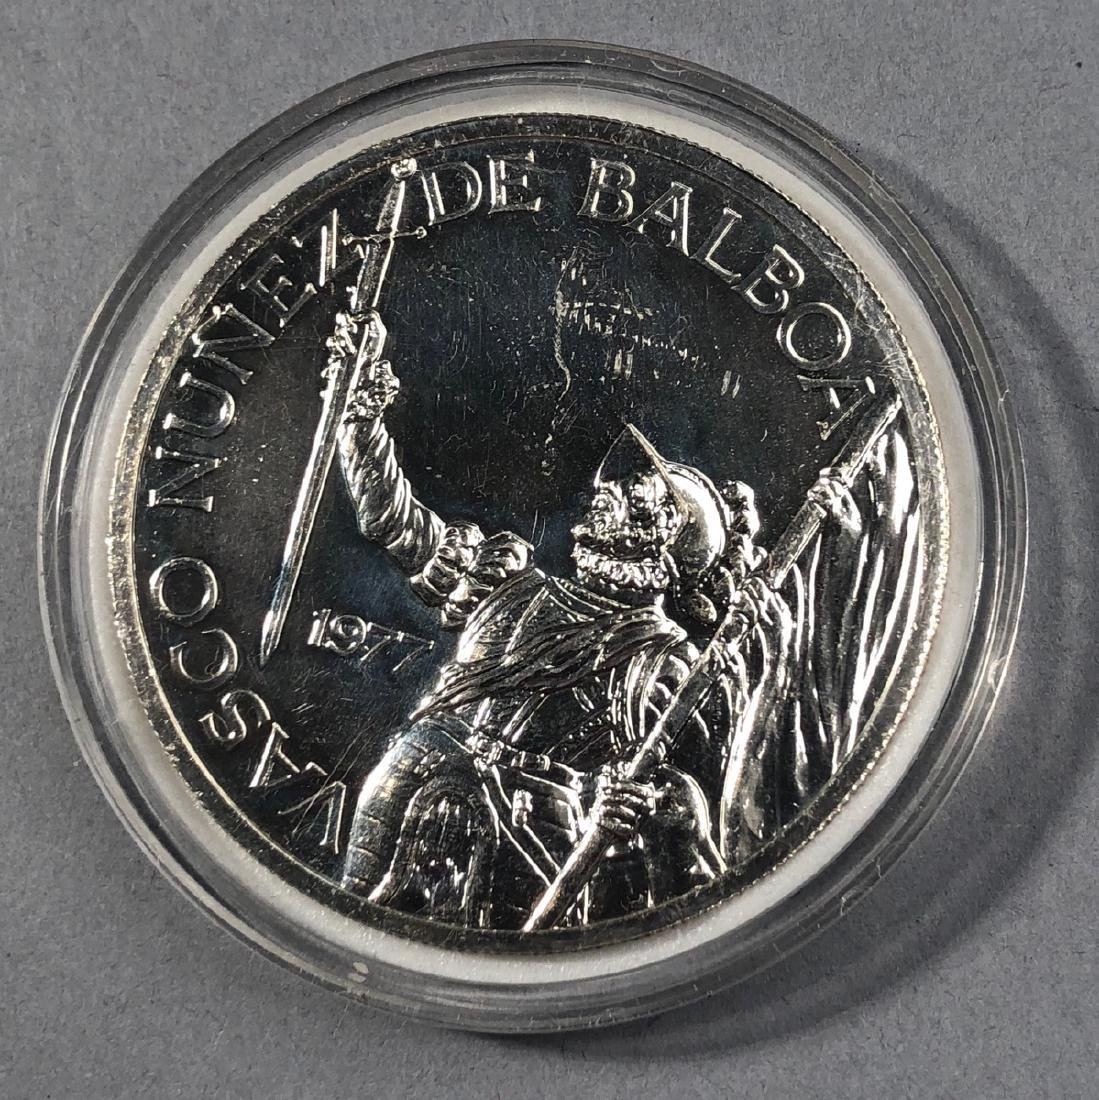 1977 Rep of Panama 20 Balboa Proof. .925 Sterling